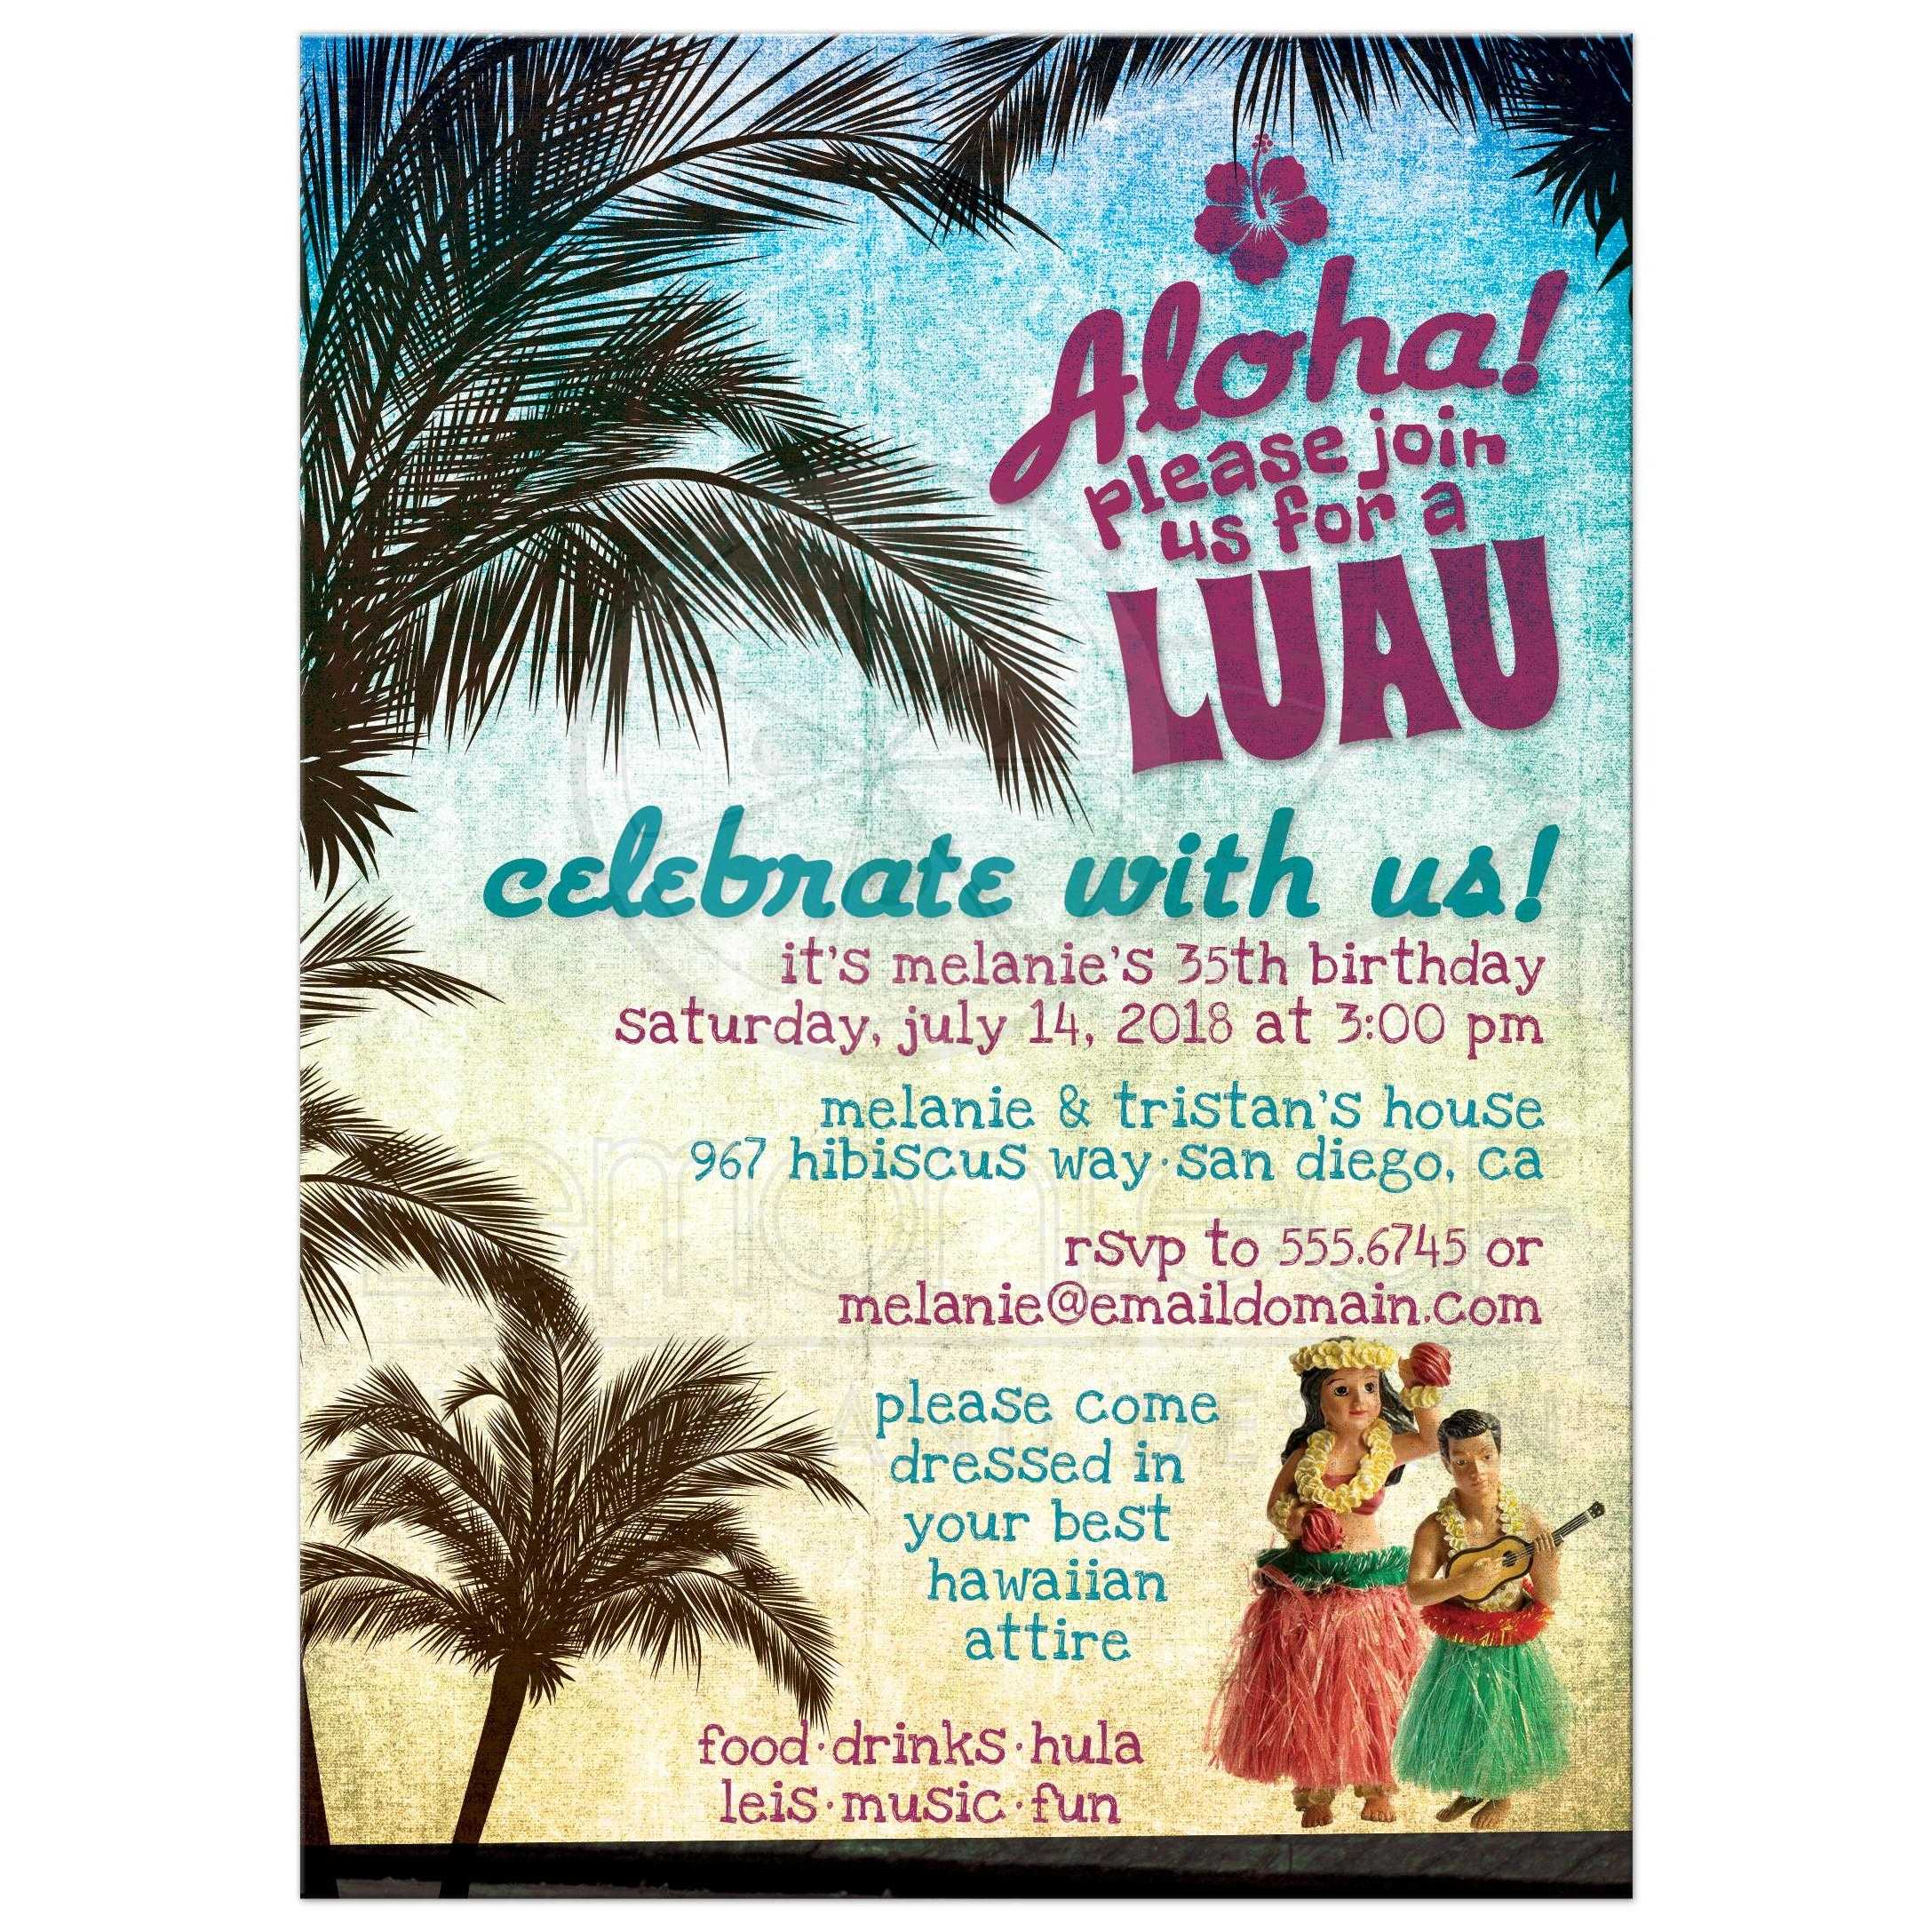 Luau invitations retro hawaiian beach party retro hawaiian luau beach party invitations front stopboris Gallery